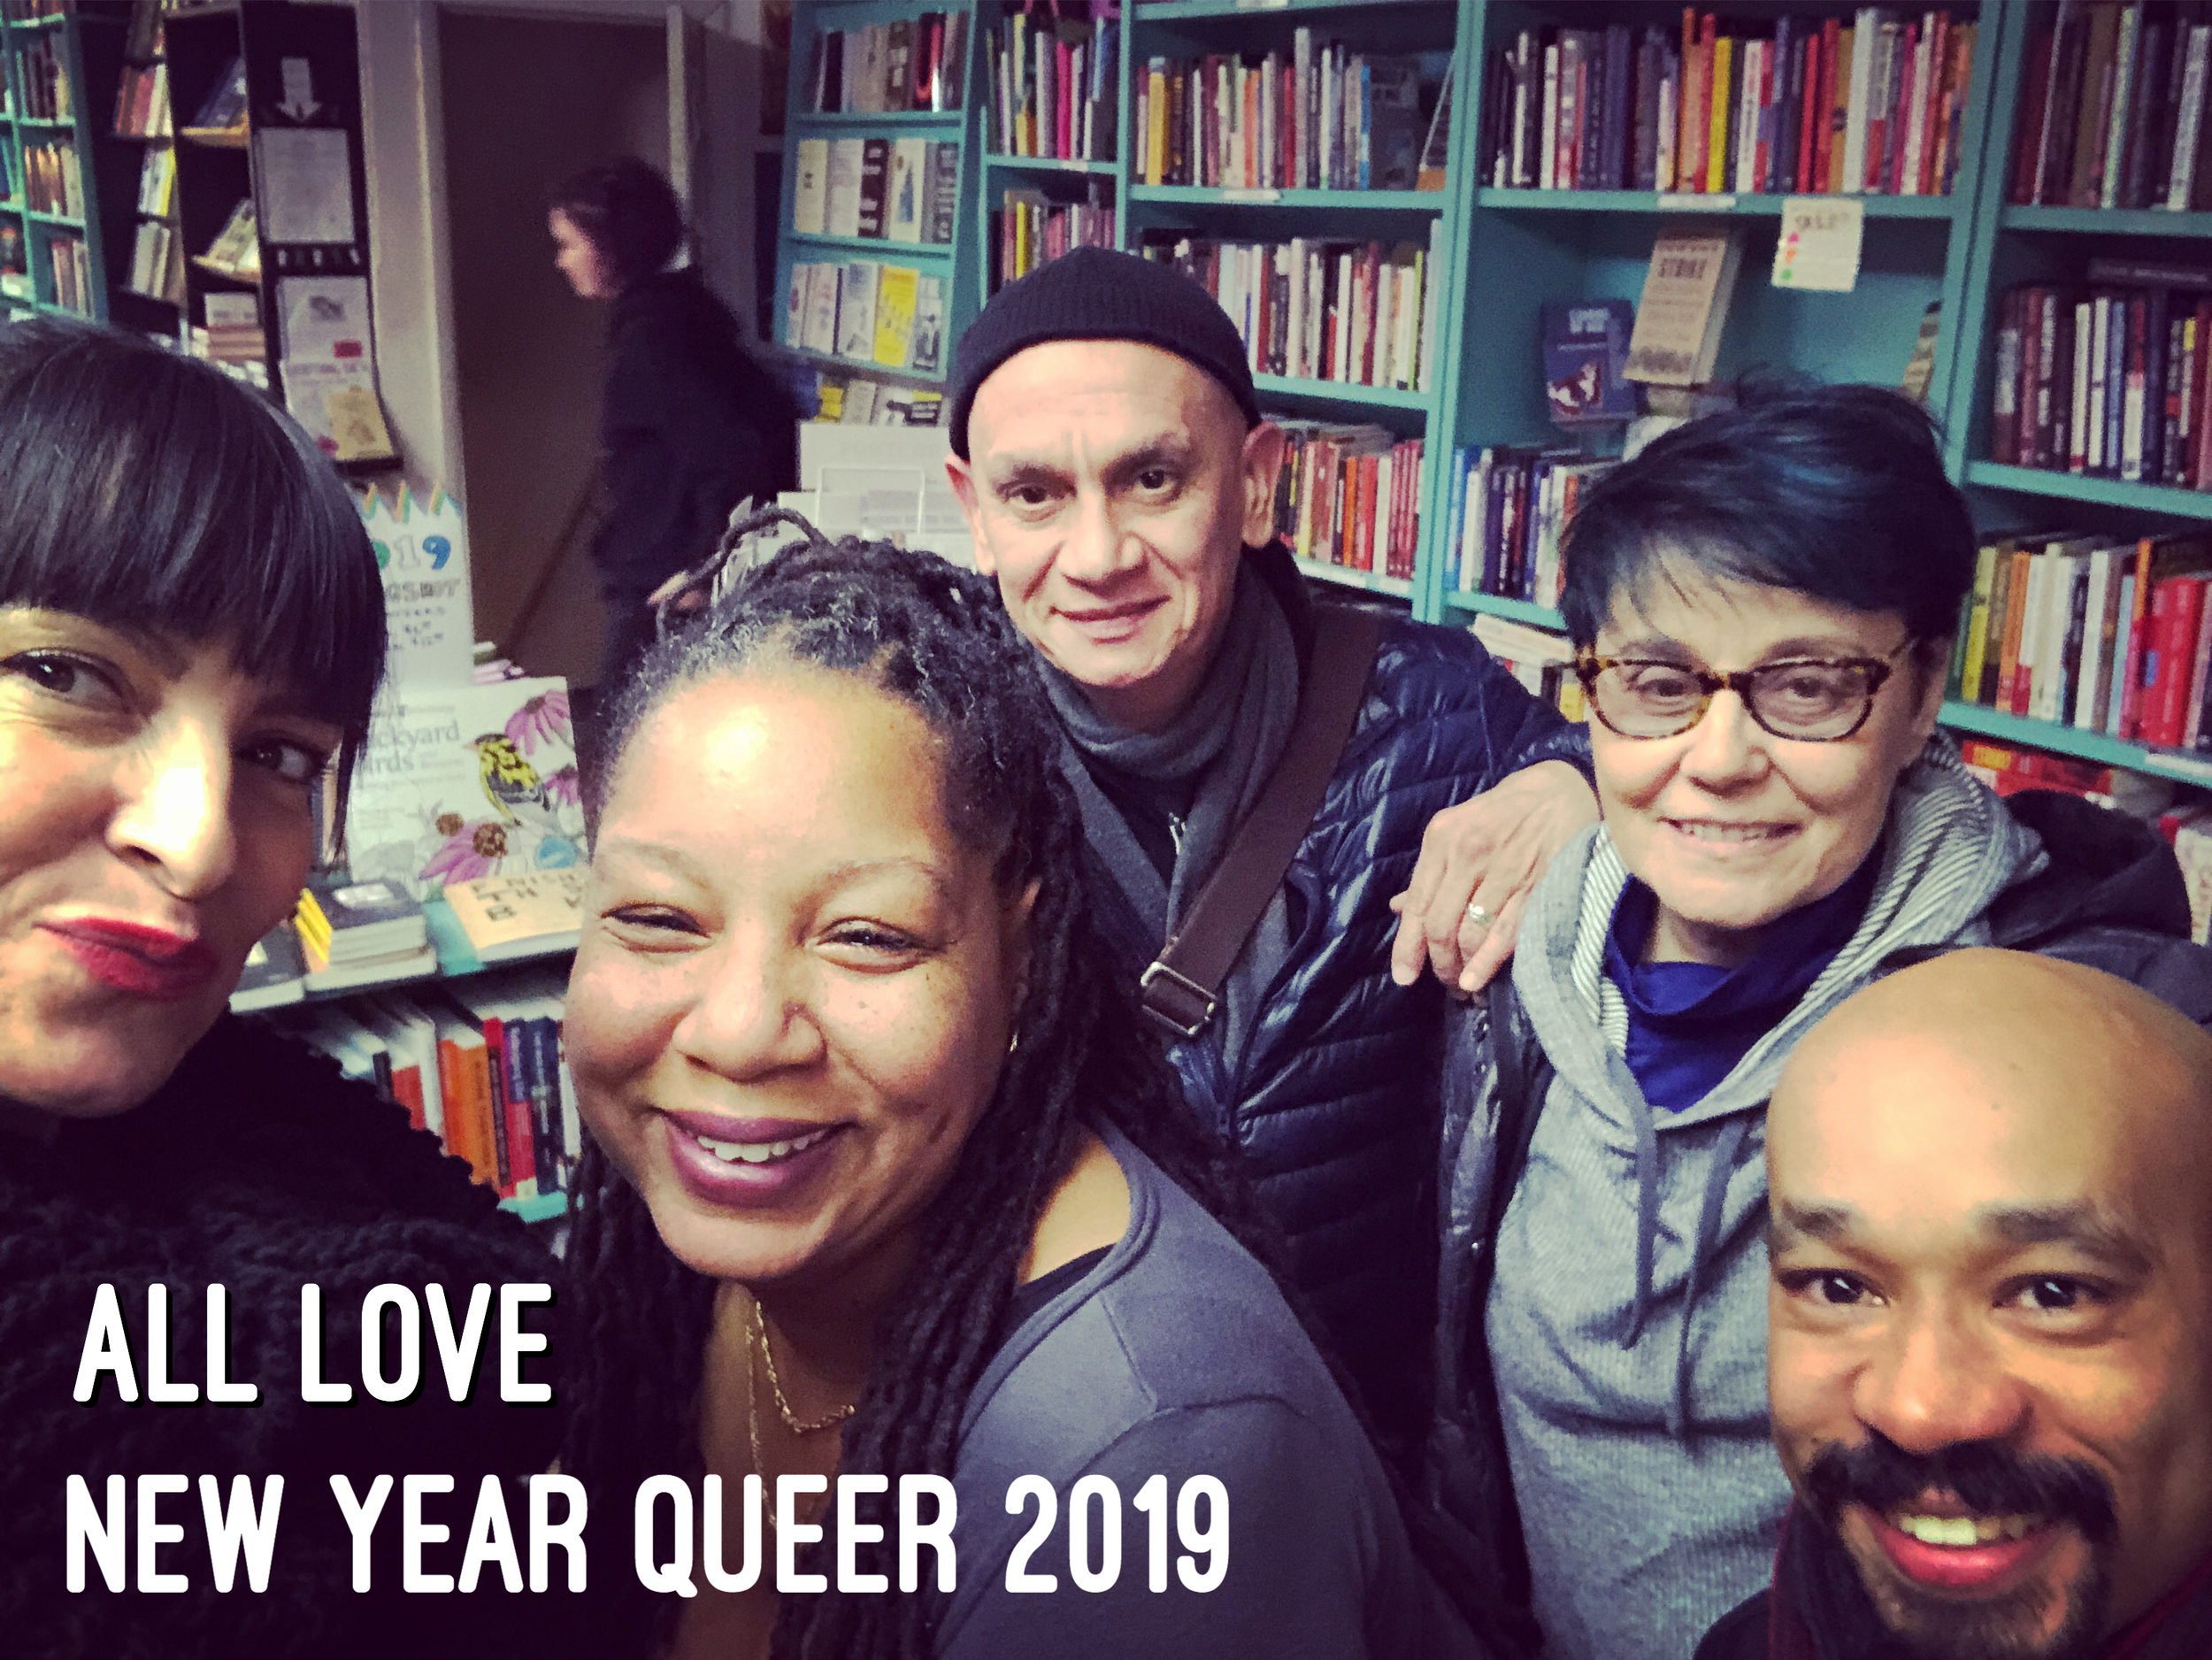 #NYQ19 - Thank you for sharing space with us during our first New Year Queer gathering!